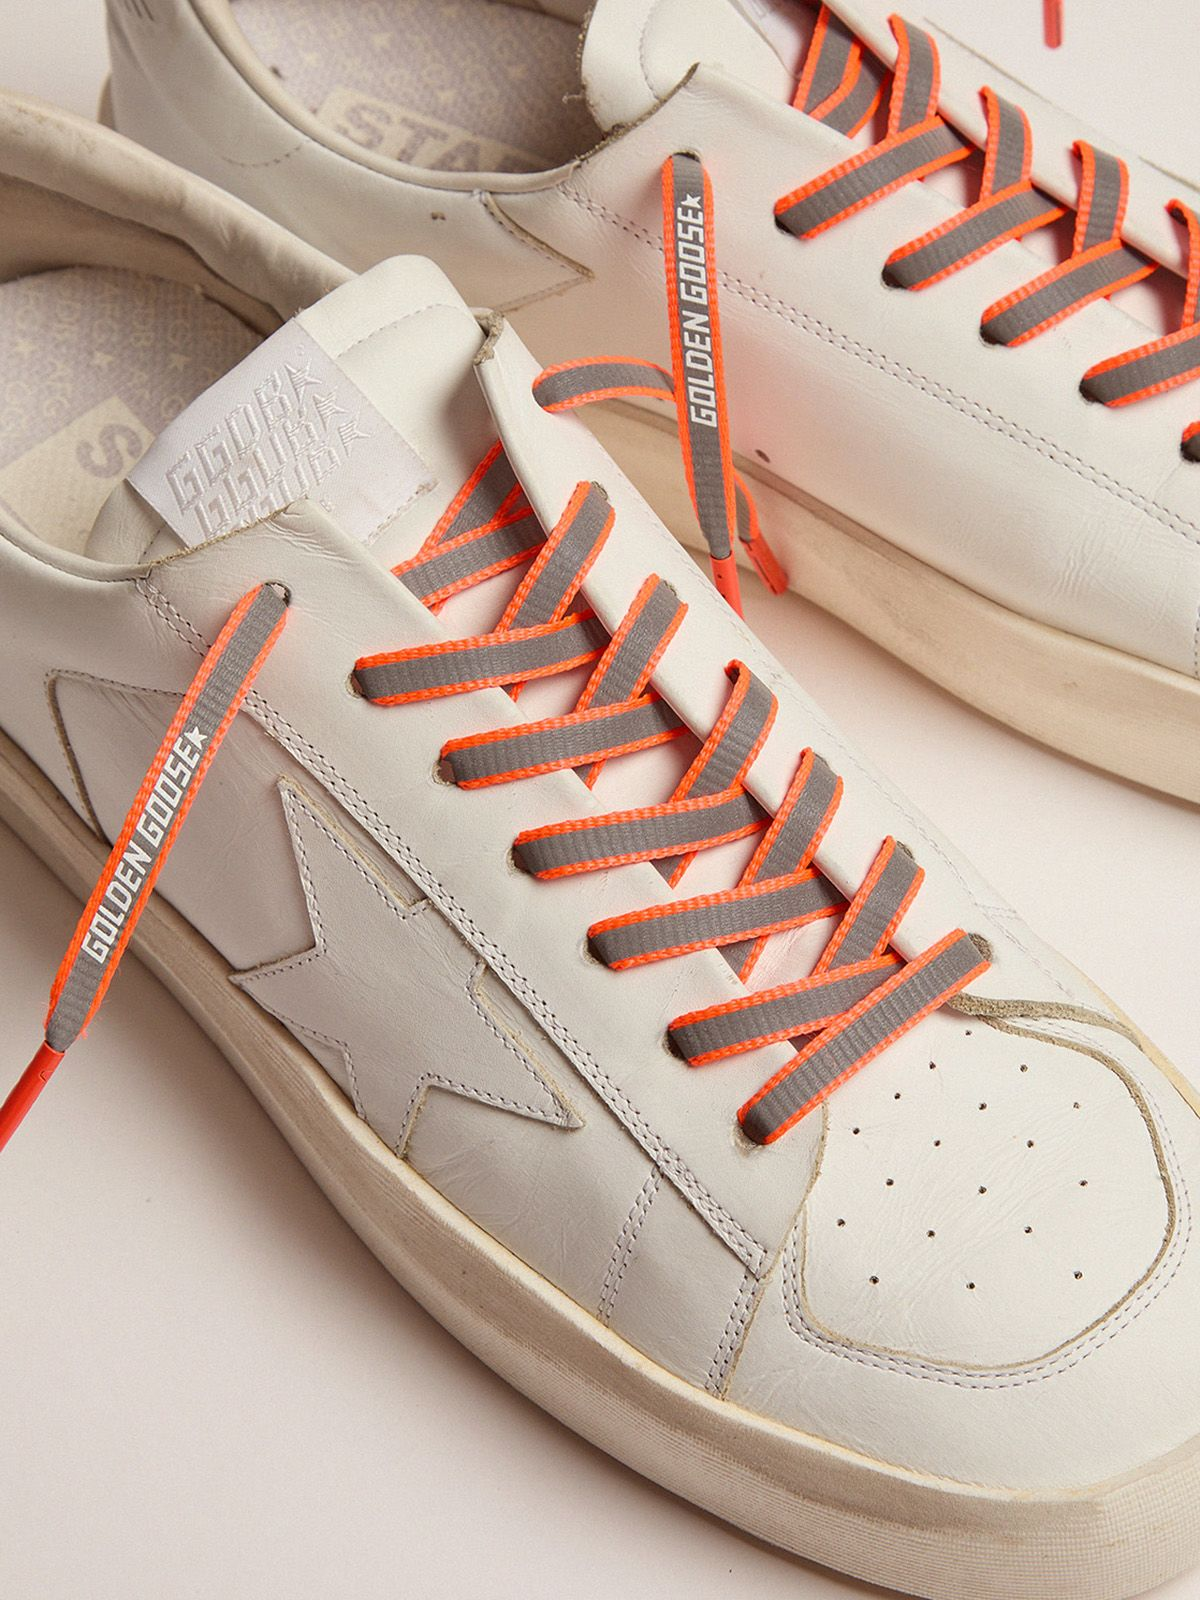 Golden Goose - Women's neon orange reflective laces with logo in